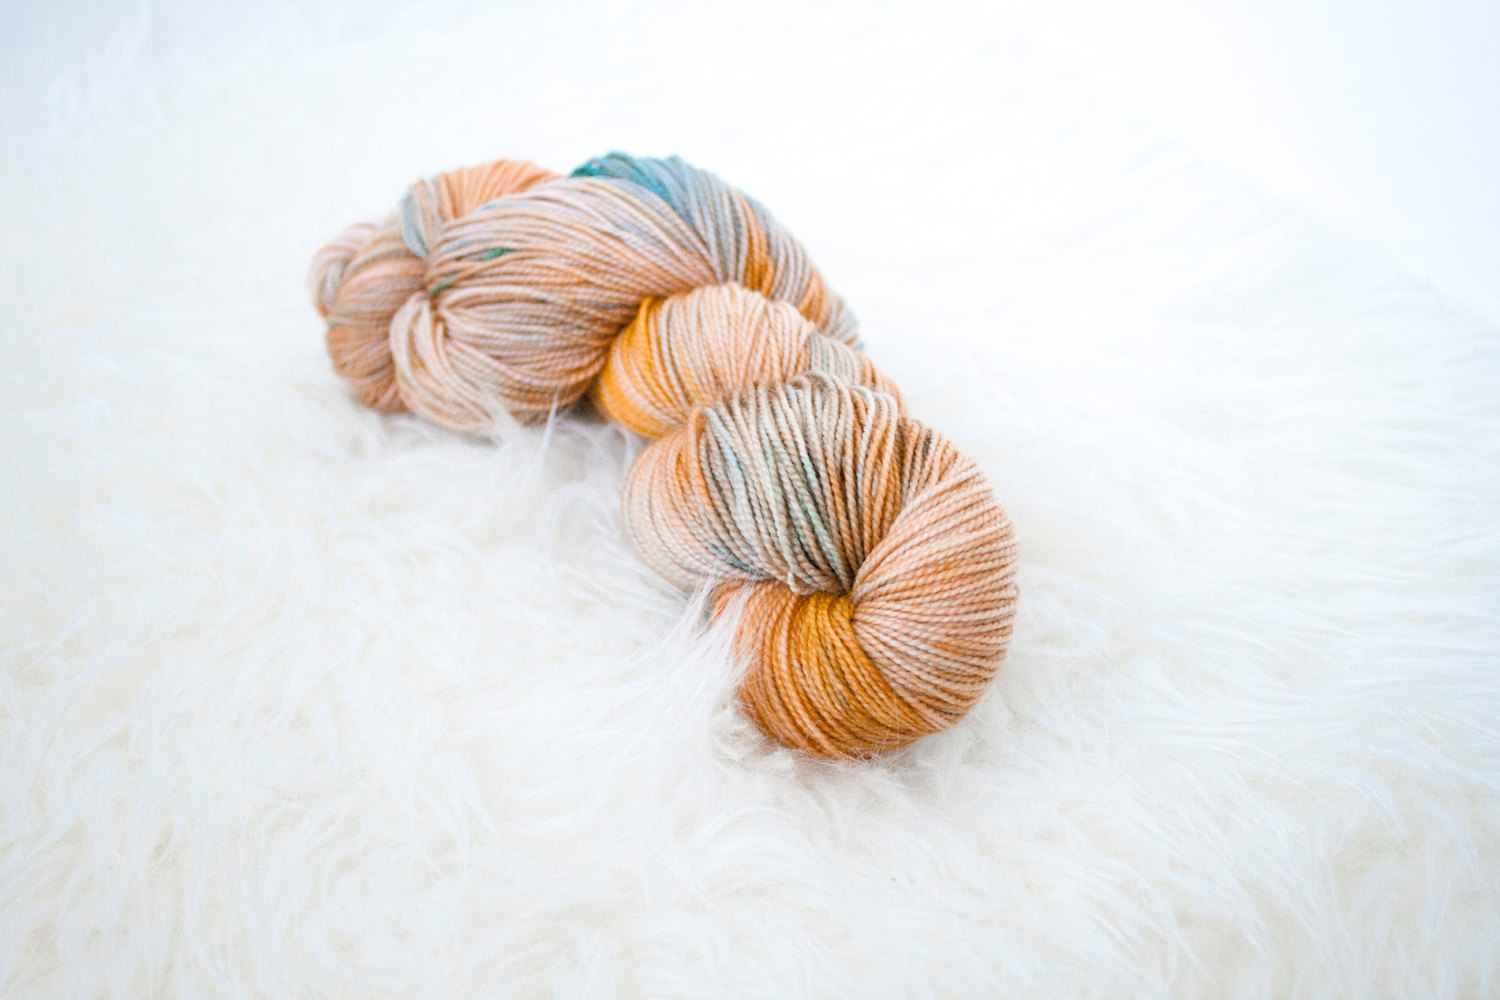 Stacey_Hsi_Chickpea_Yarns